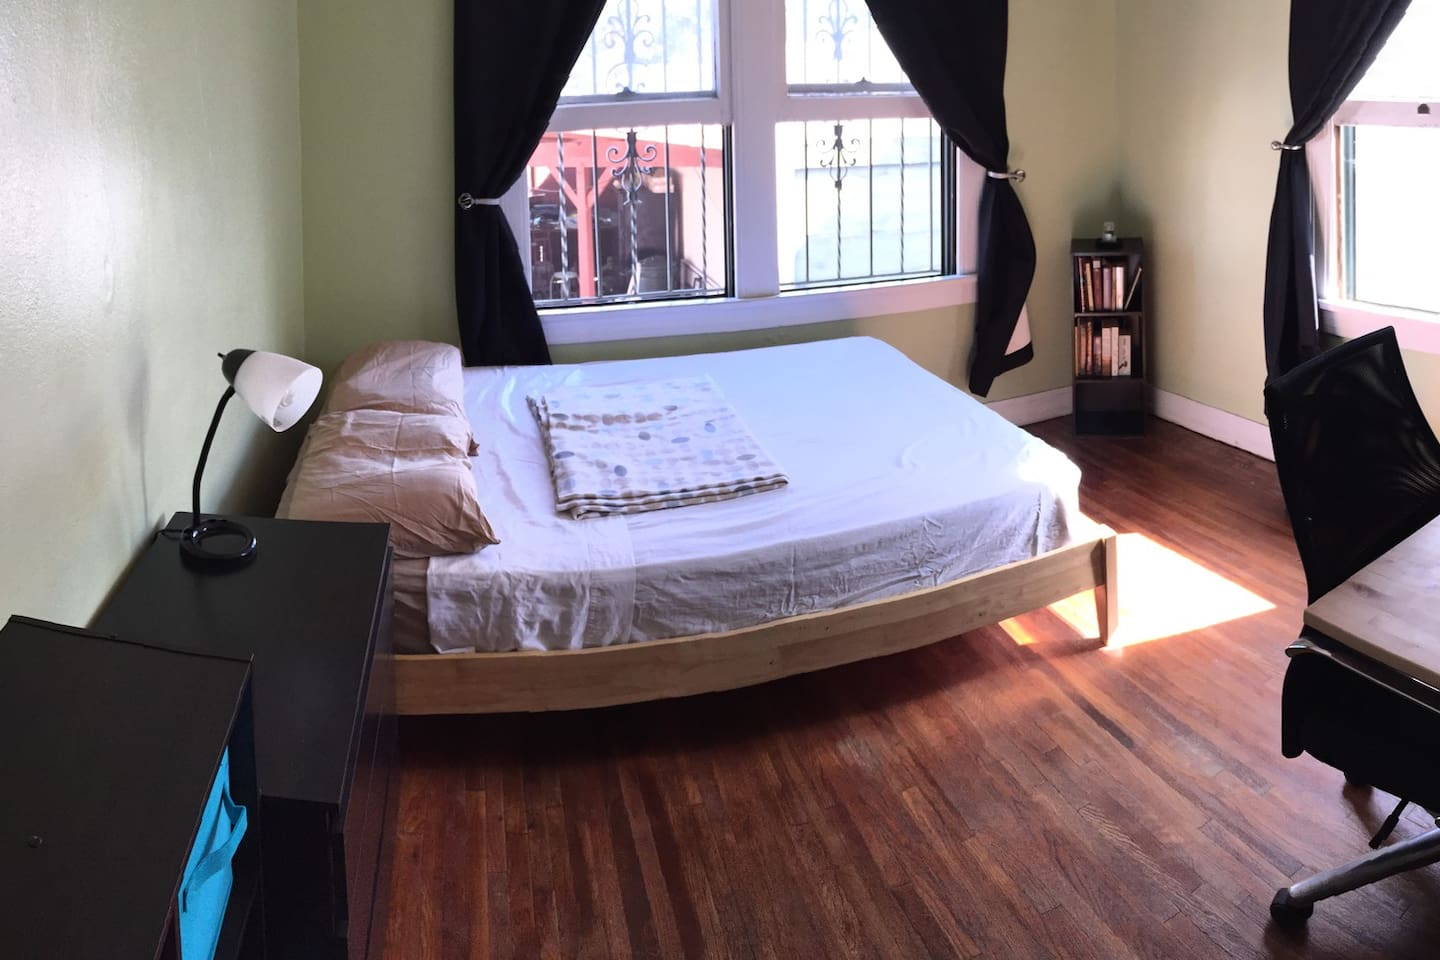 Clean room and comfortable bed.